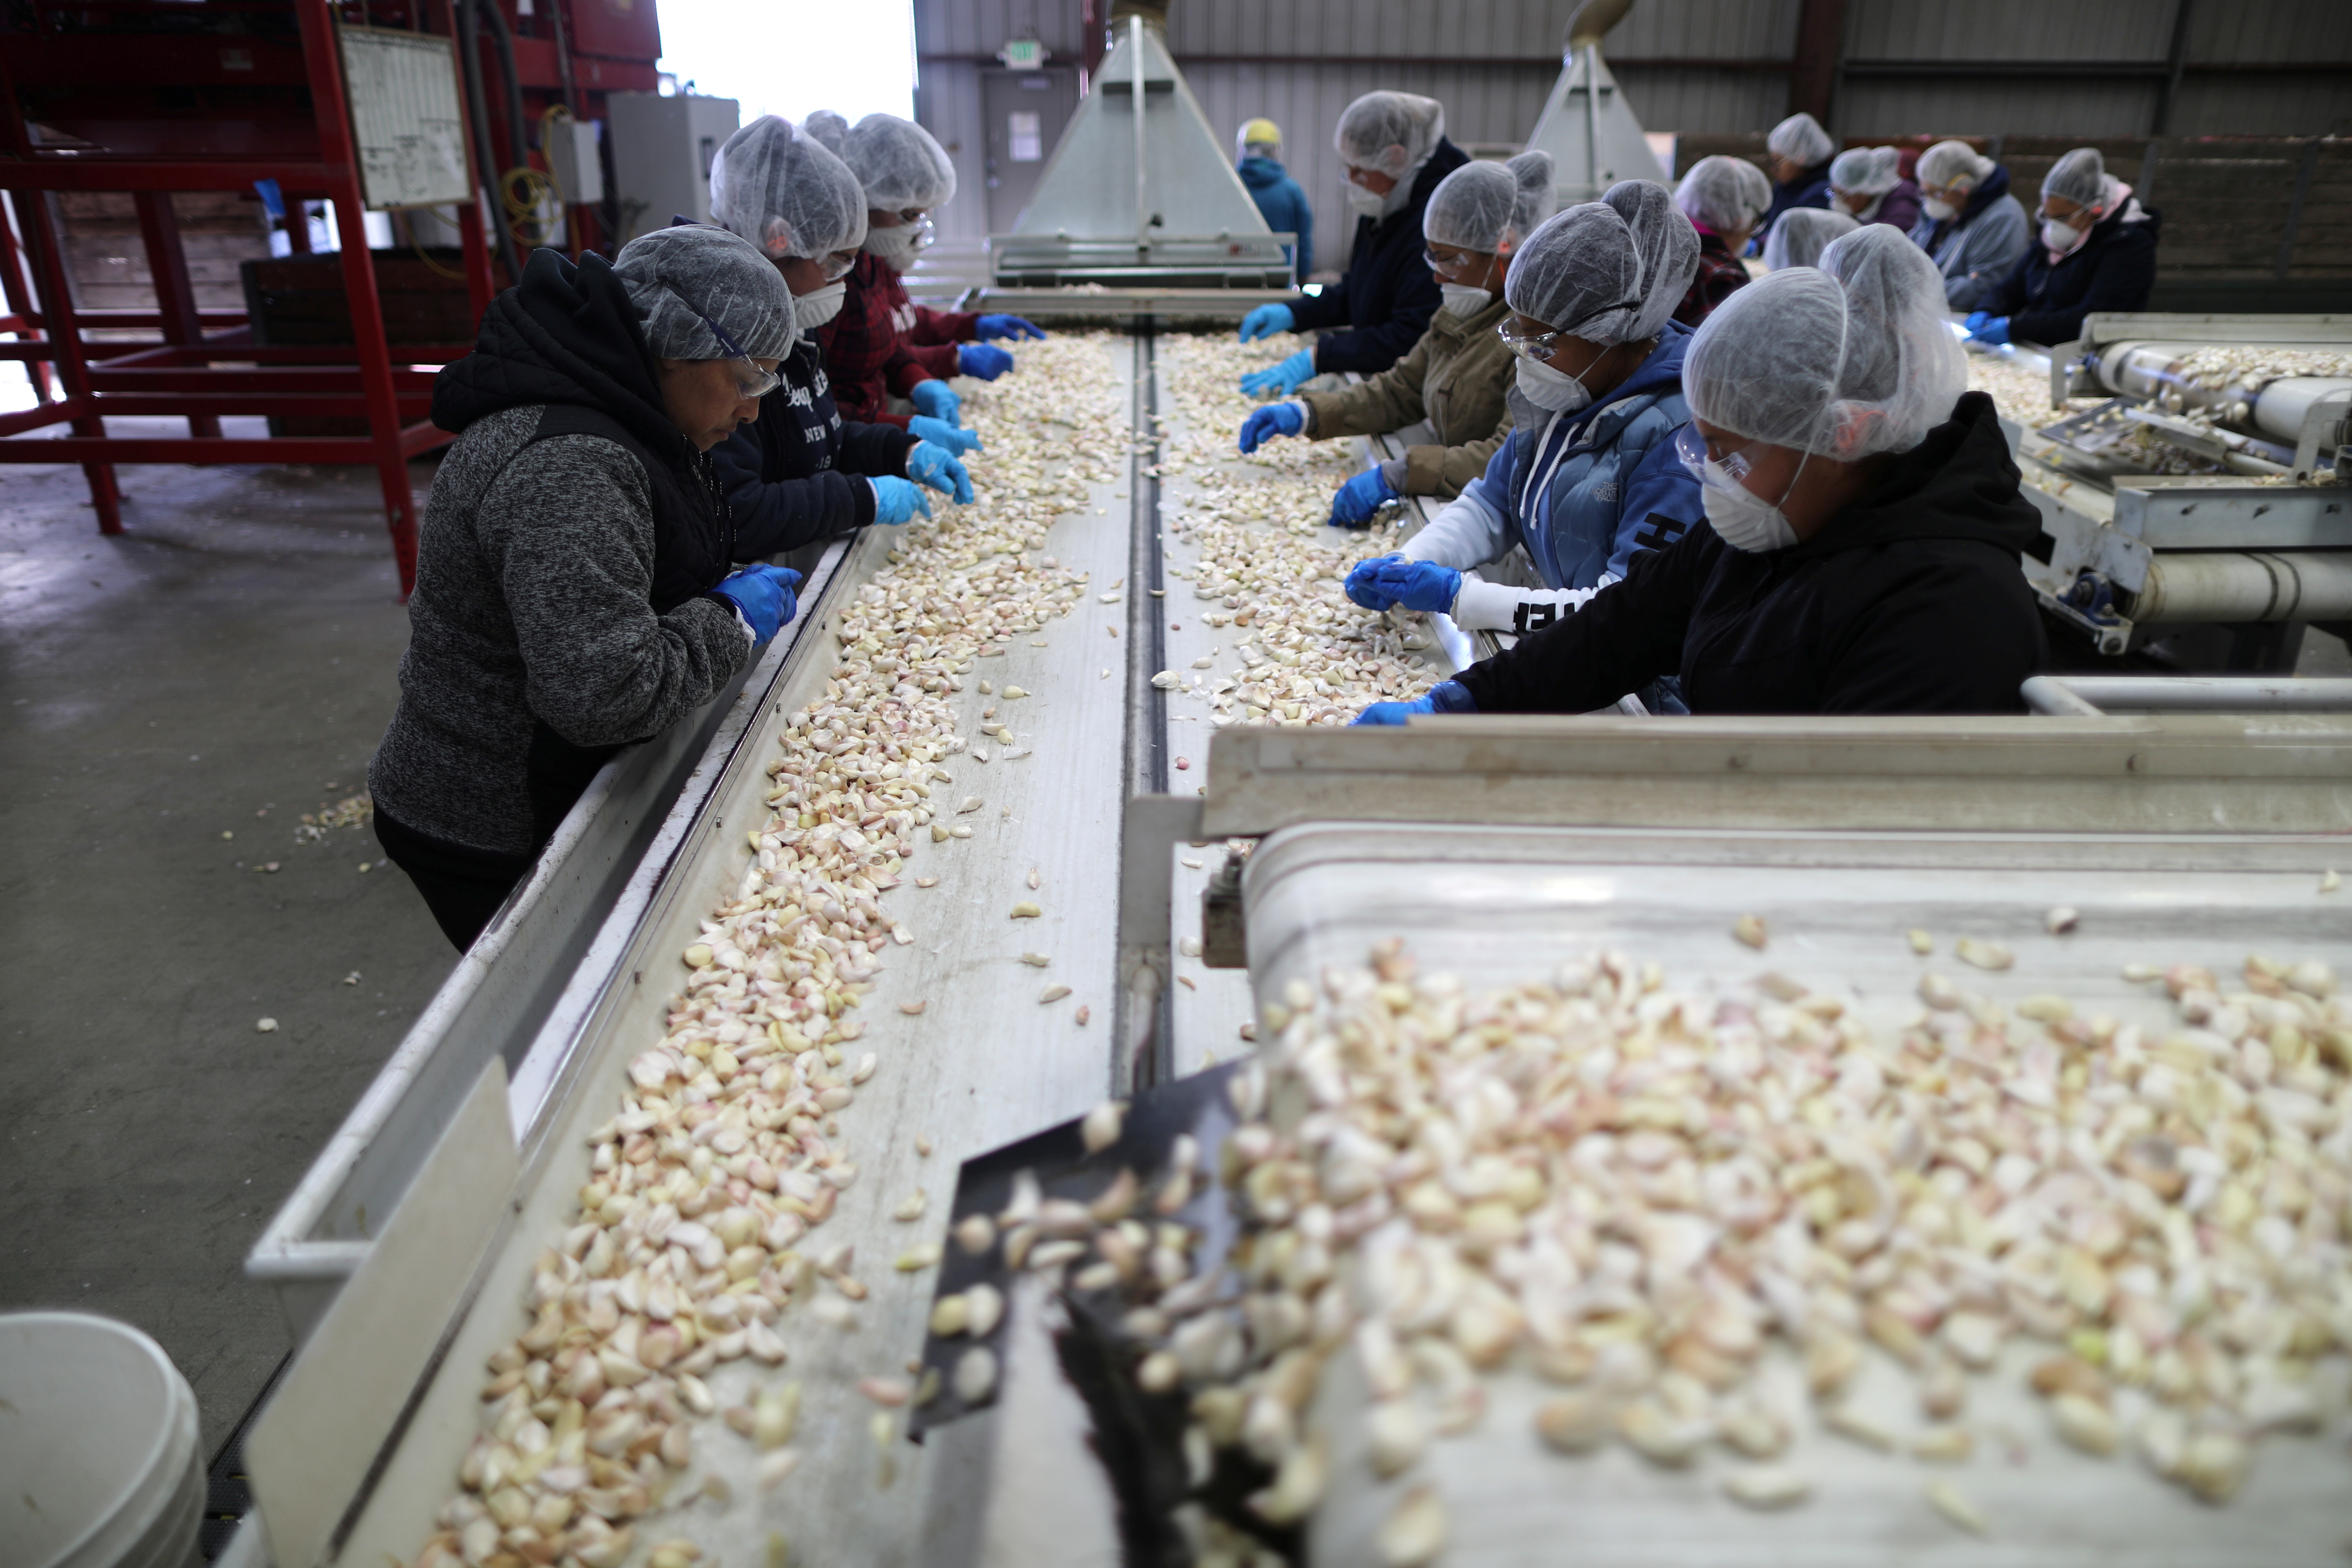 Garlic is harvested at Christopher Ranch in Gilroy, California, U.S., March 29, 2019. Picture taken March 29, 2019. REUTERS/Lucy Nicholson